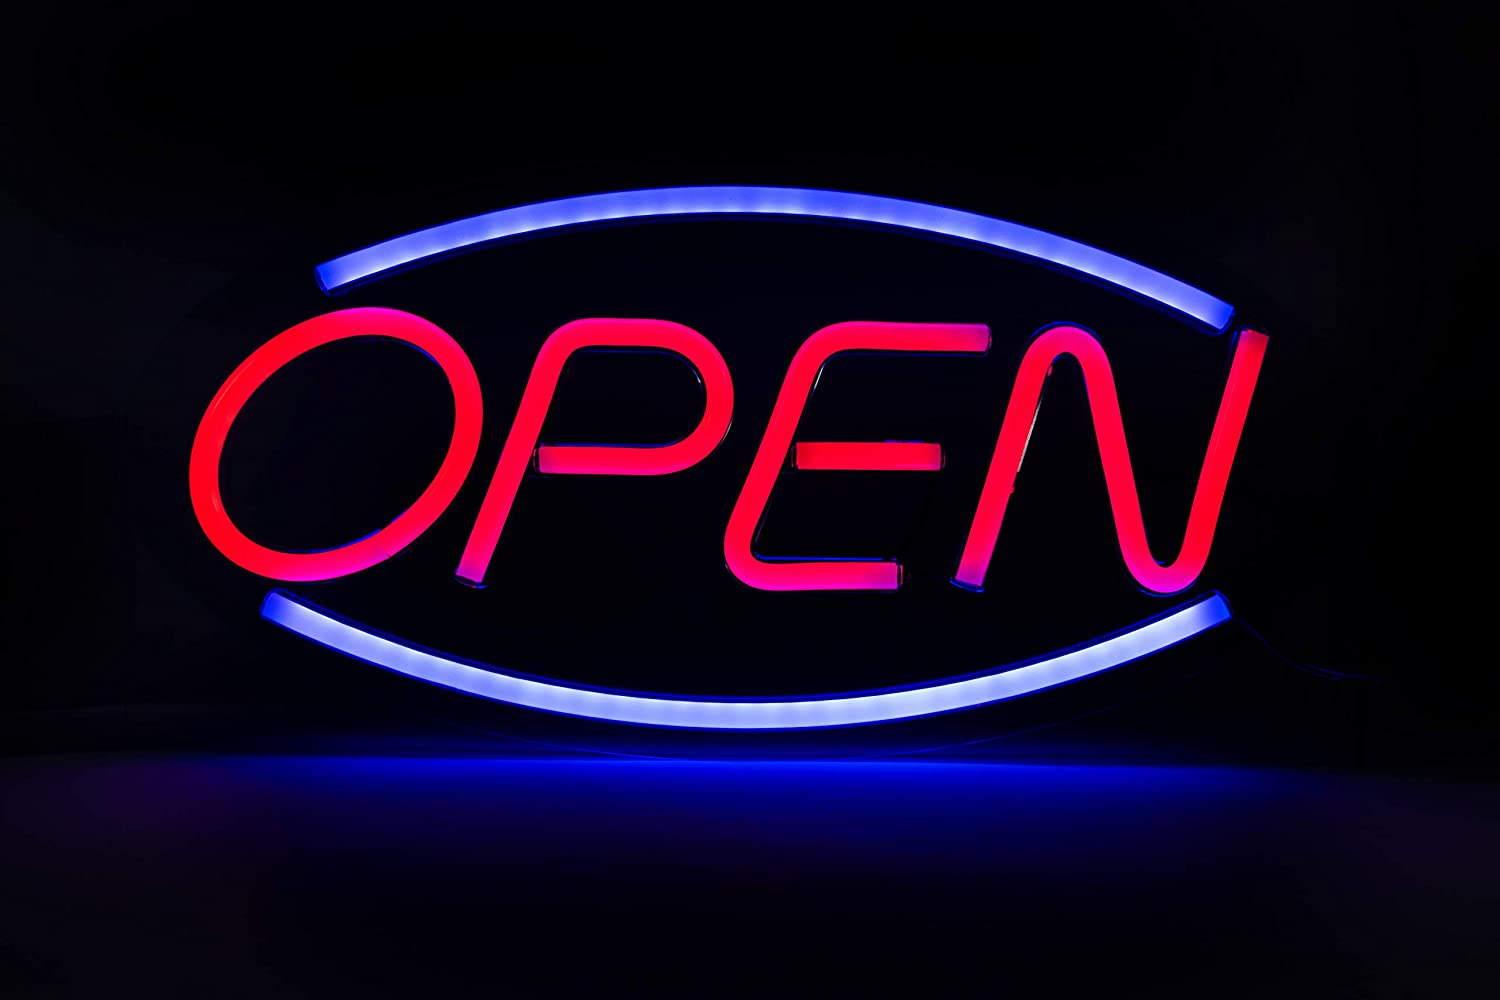 NEON Open Sign, New Neon Sign for Business, Home, and Office Decor, with UL Power Adapter, LED Open Sign, Medium Size 18 x 9 inch. Easy Use Plug in to Start, Open Sign - by TYGER INC 2020